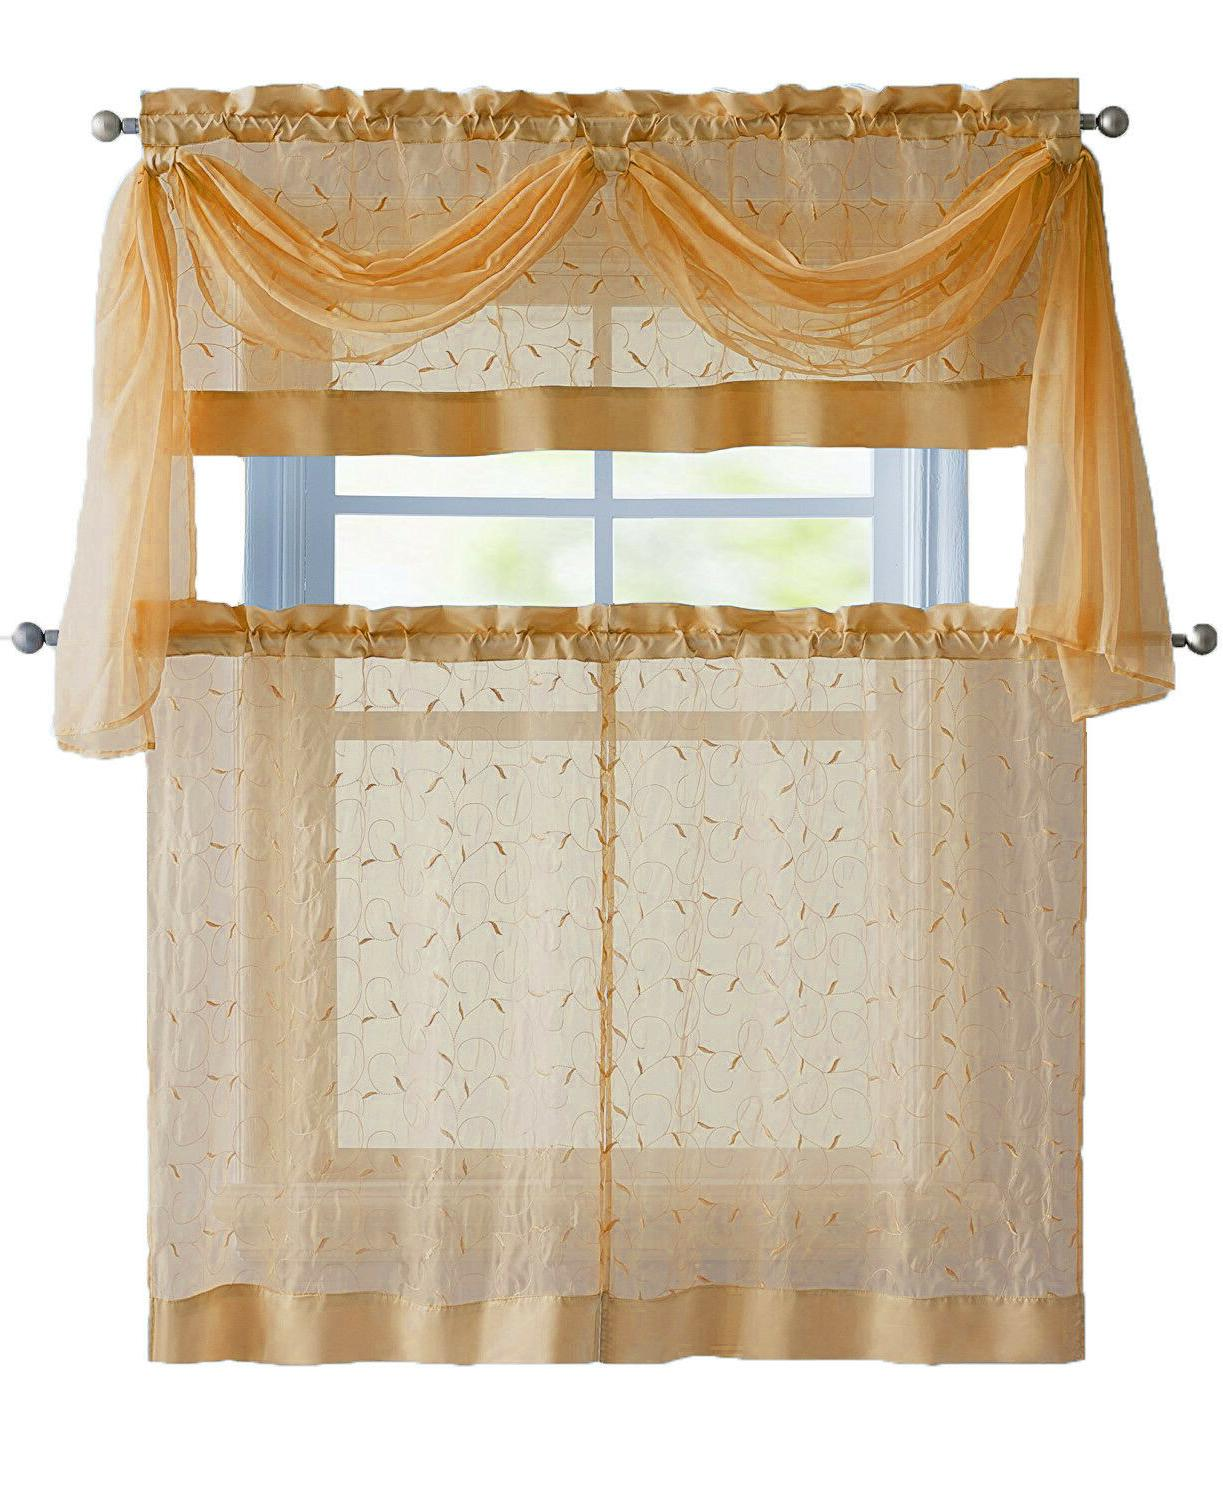 VCNY Home Linen Leaf Embroidered Set Colors